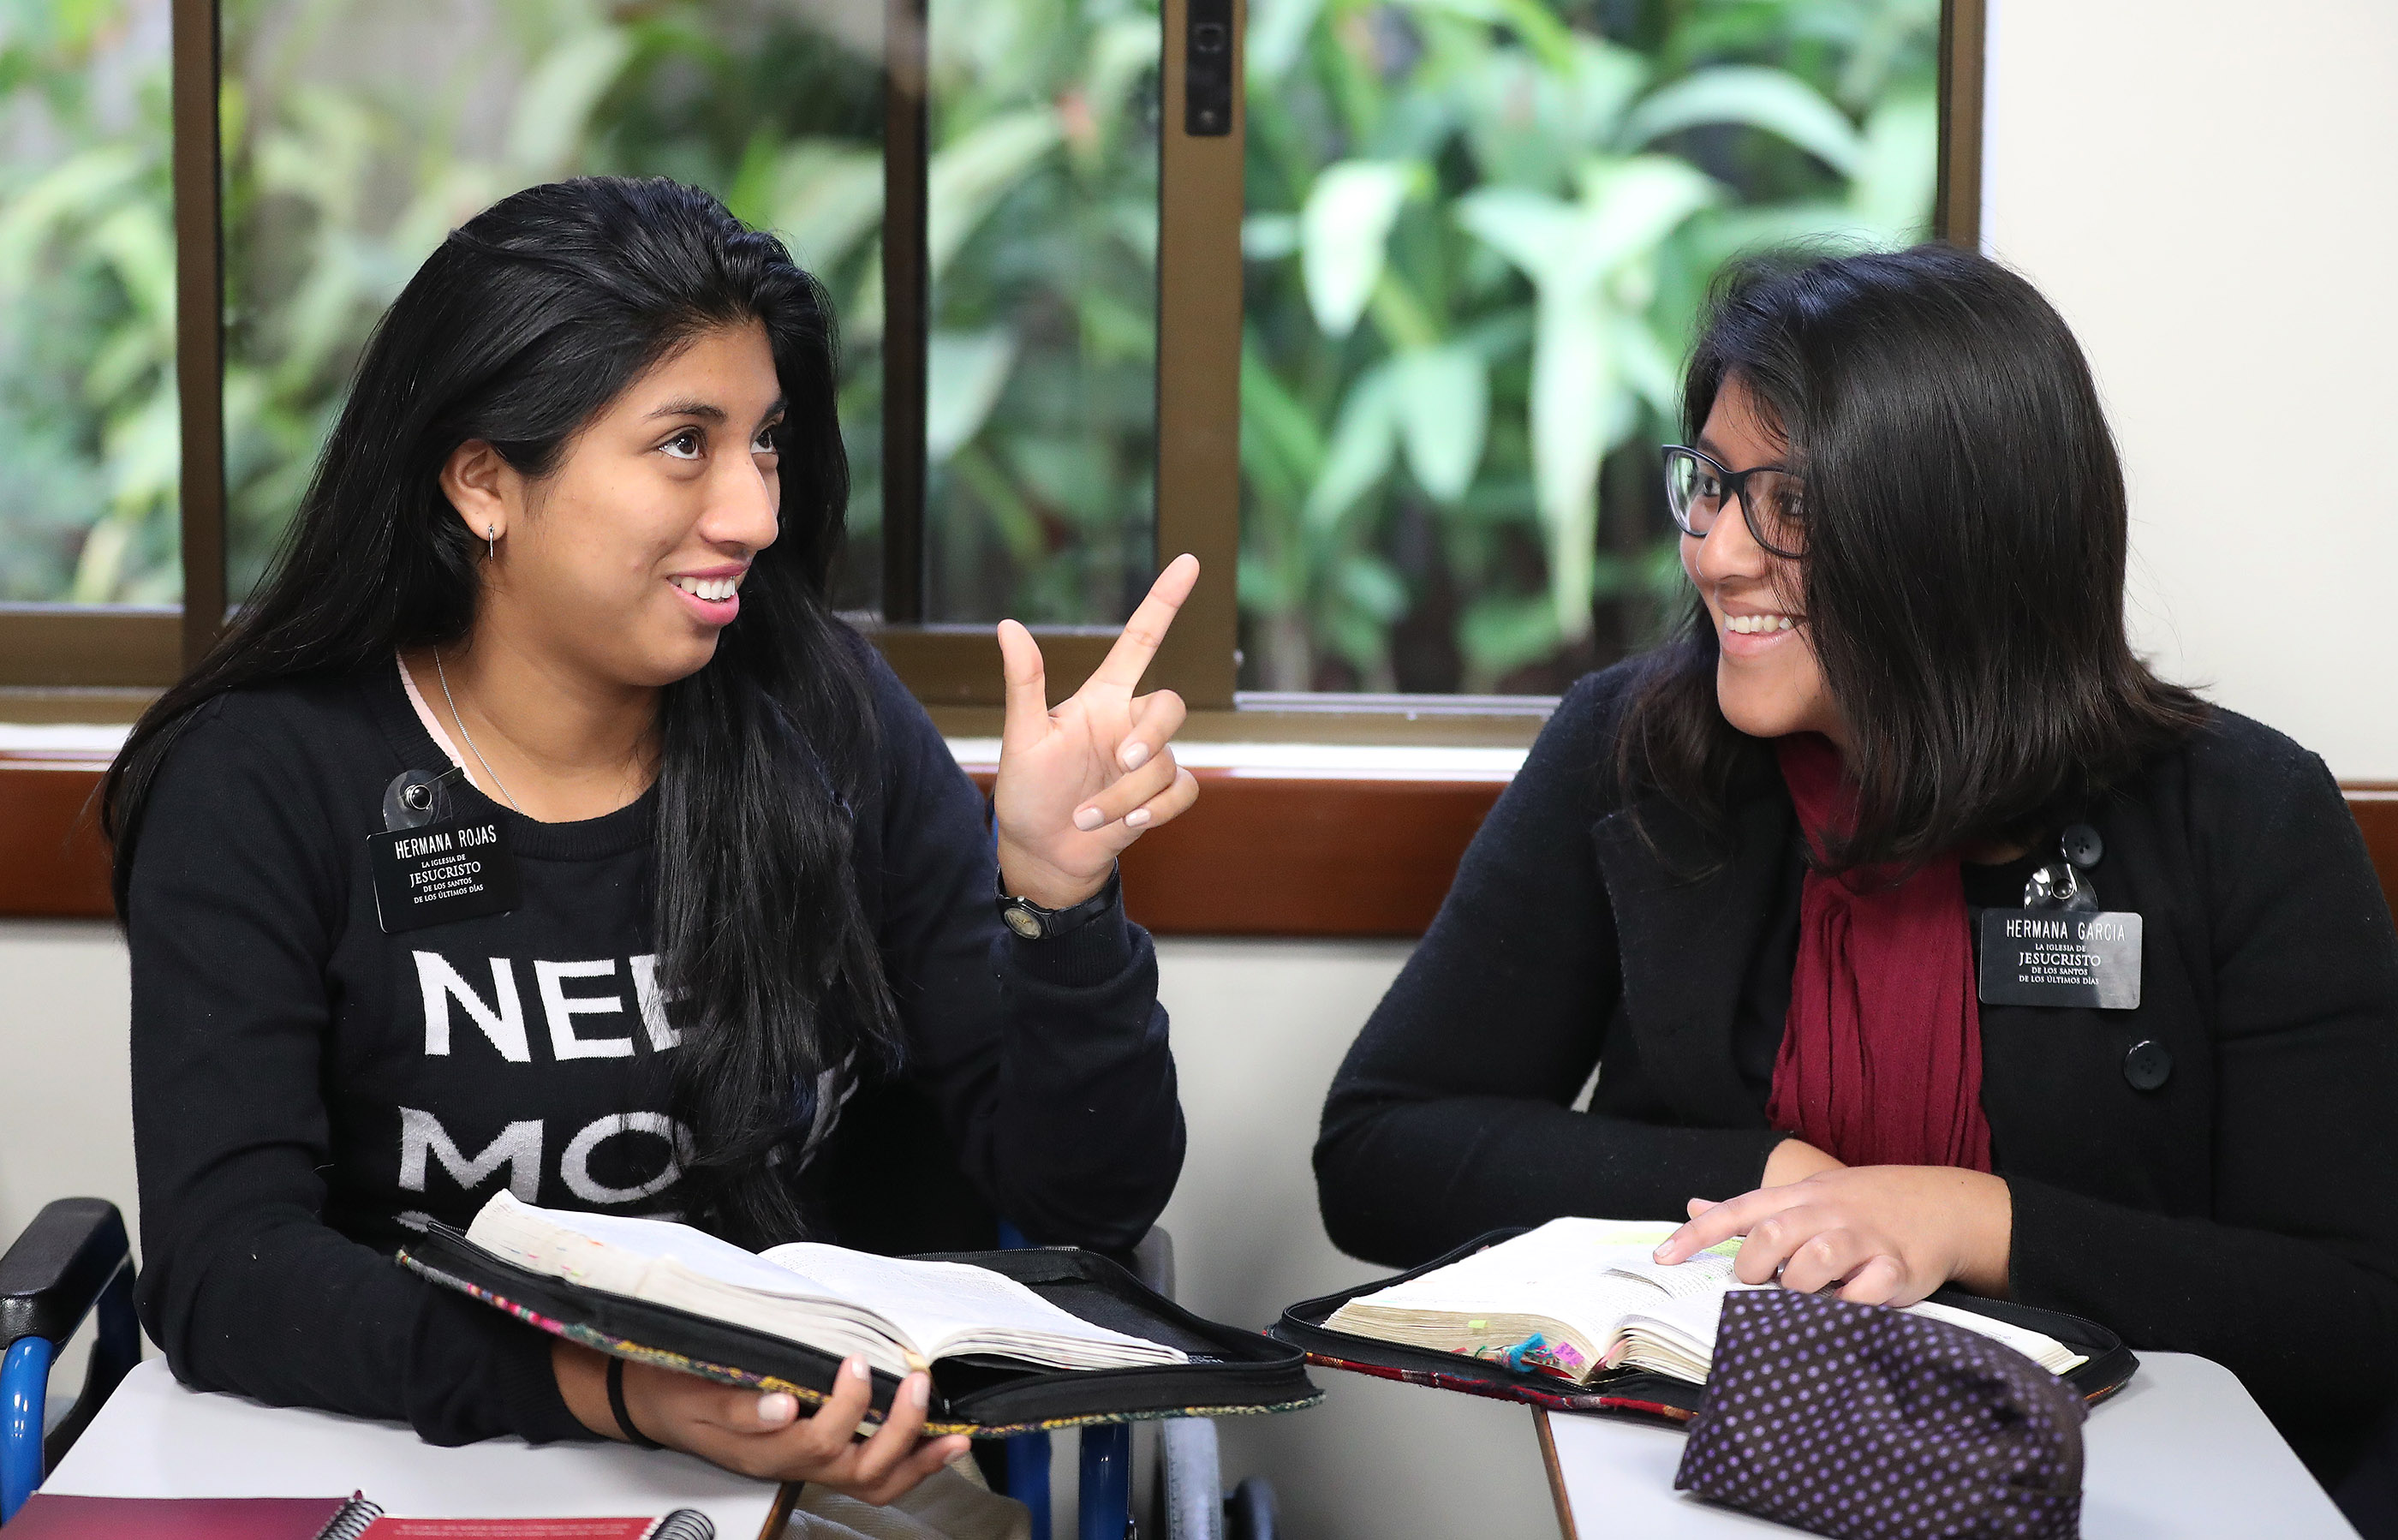 Sisters Jackeline Rojas and Valeria Garcia study at the Peru Missionary Training Center in Lima, Peru on Friday, Oct. 19, 2018.